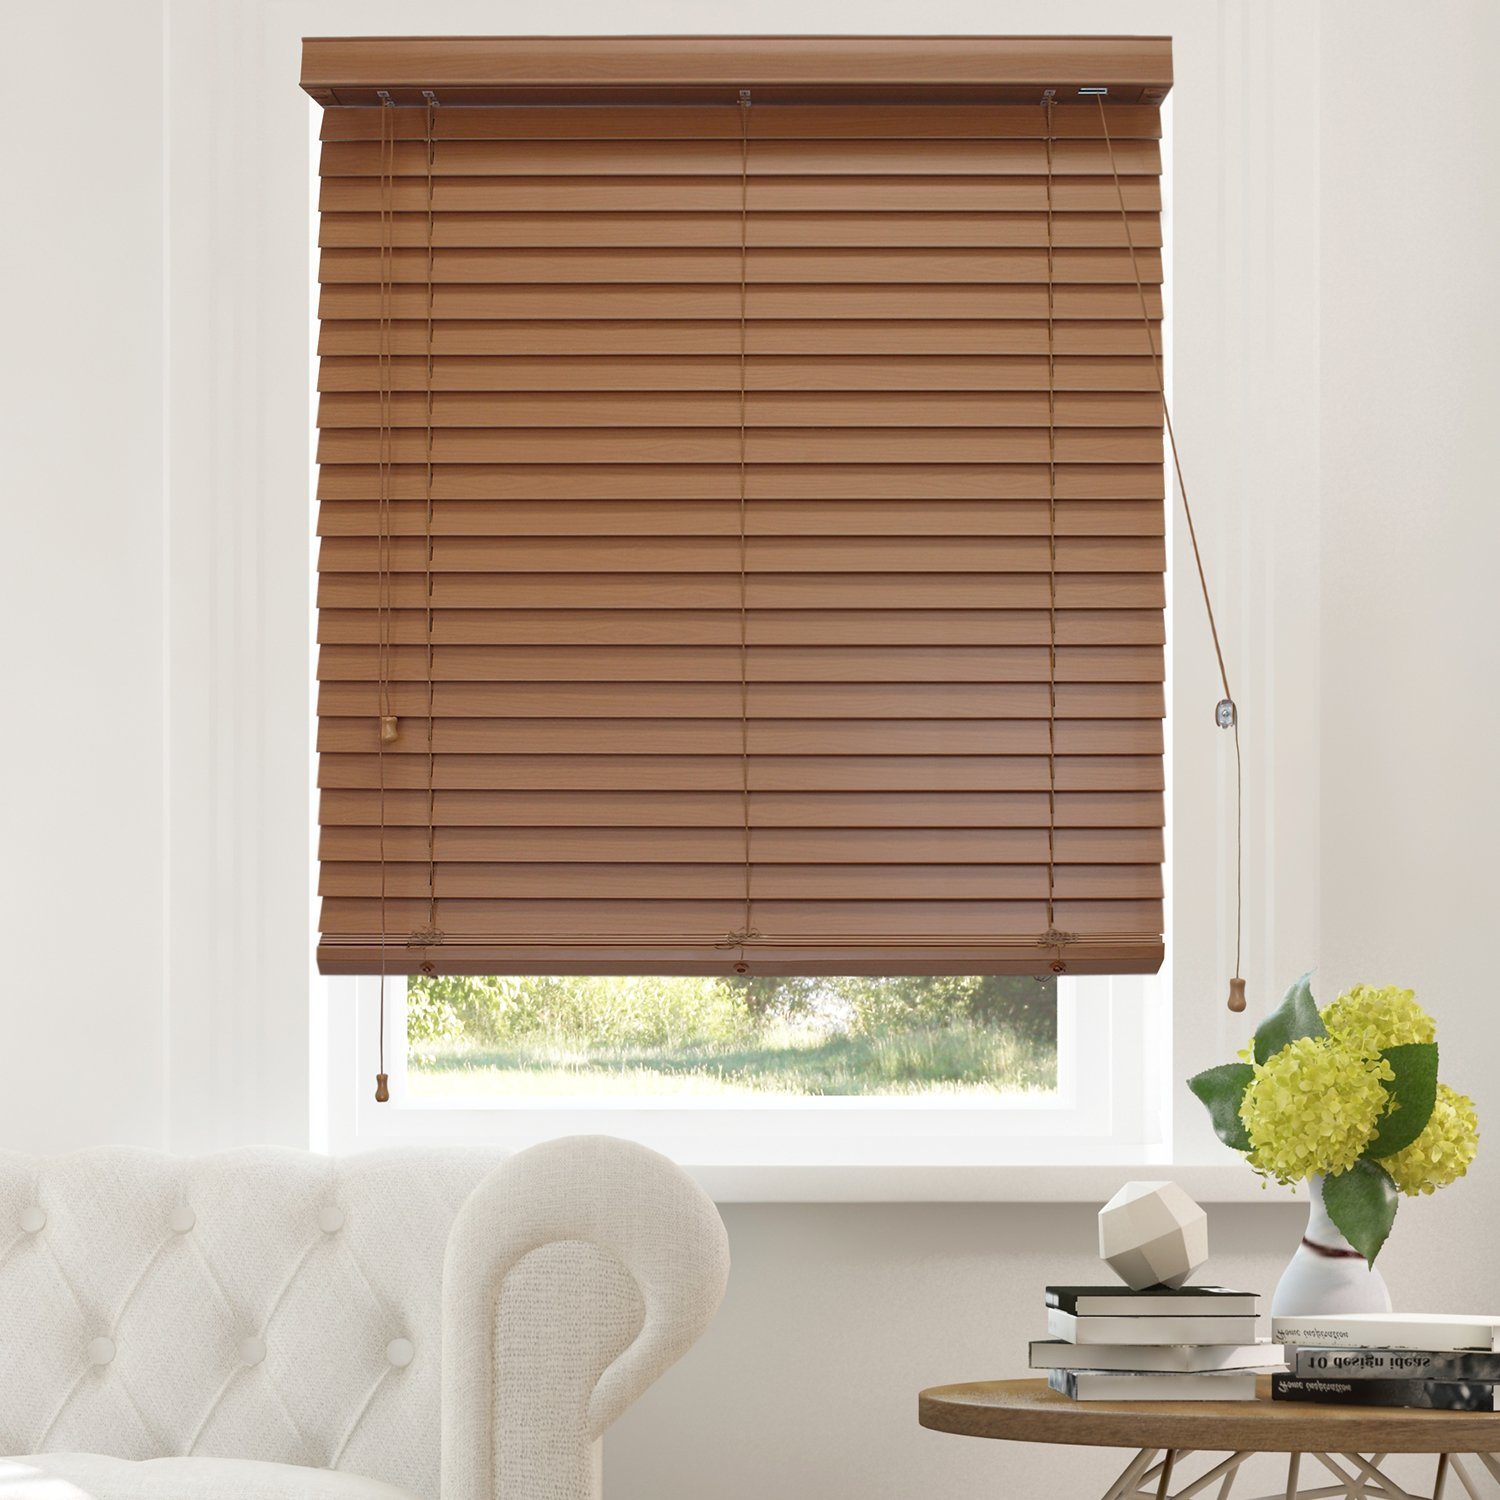 fitted panel maximum wood biz georgia apollo treatments church simple your reviews tier shades make faux closed page my falls best va profile the for blinds of and log cabin endico next with day after upalongisland